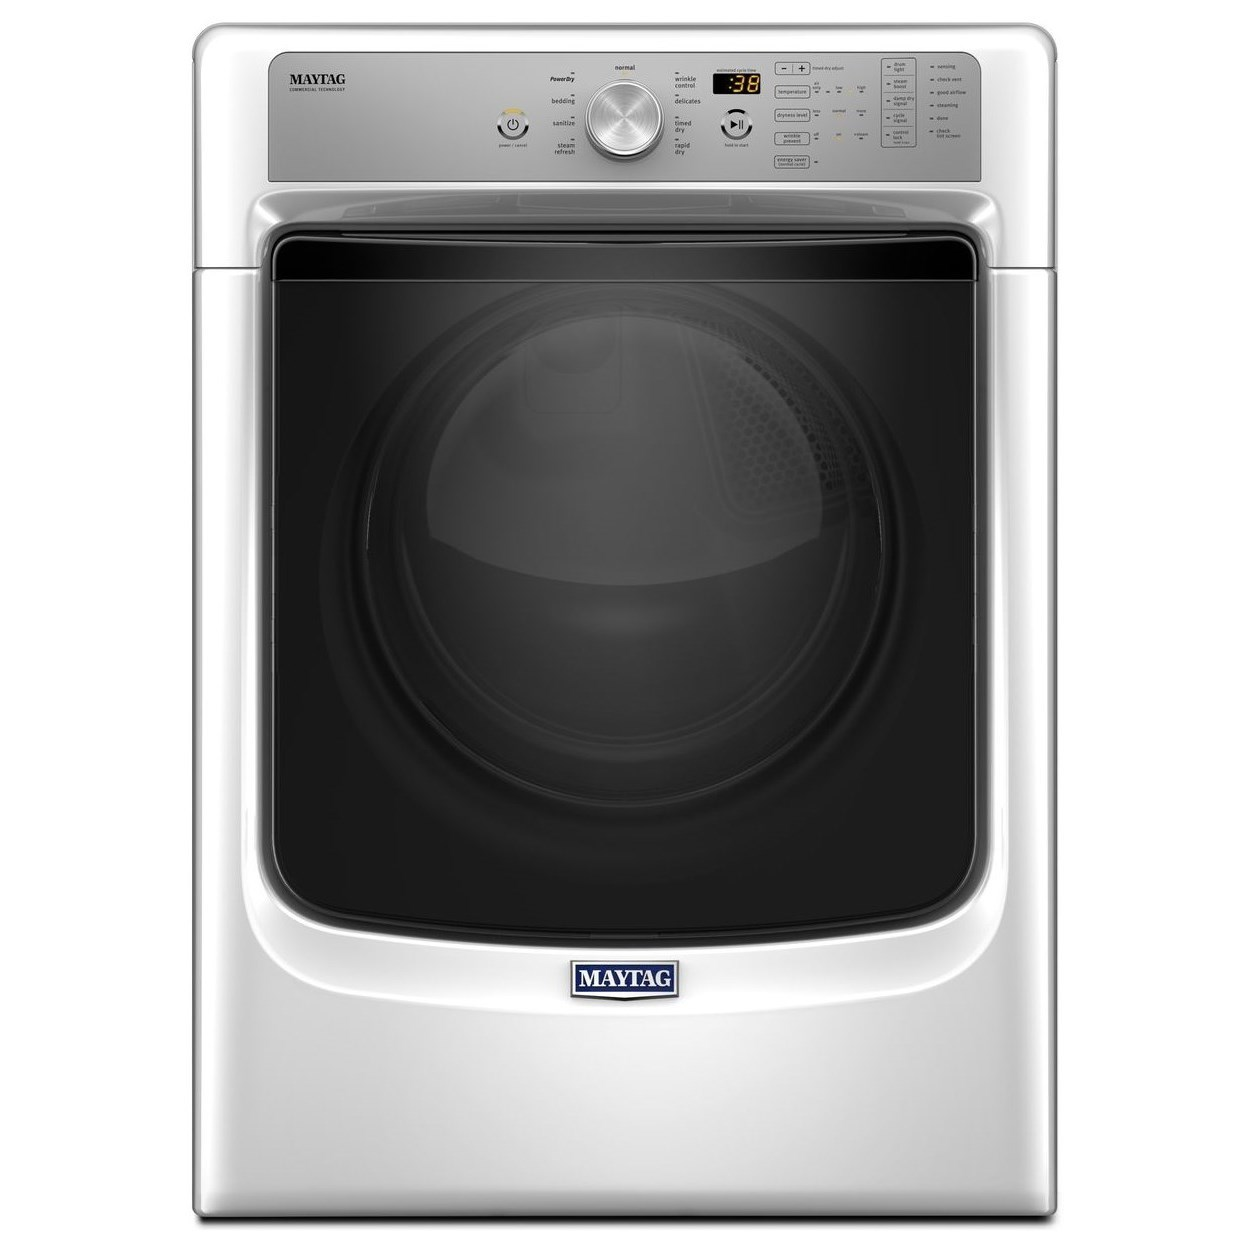 Maytag Front Load Gas Dryer 5500 Series 7.4 Cu. Ft Large Capacity Dryer - Item Number: MGD5500FW